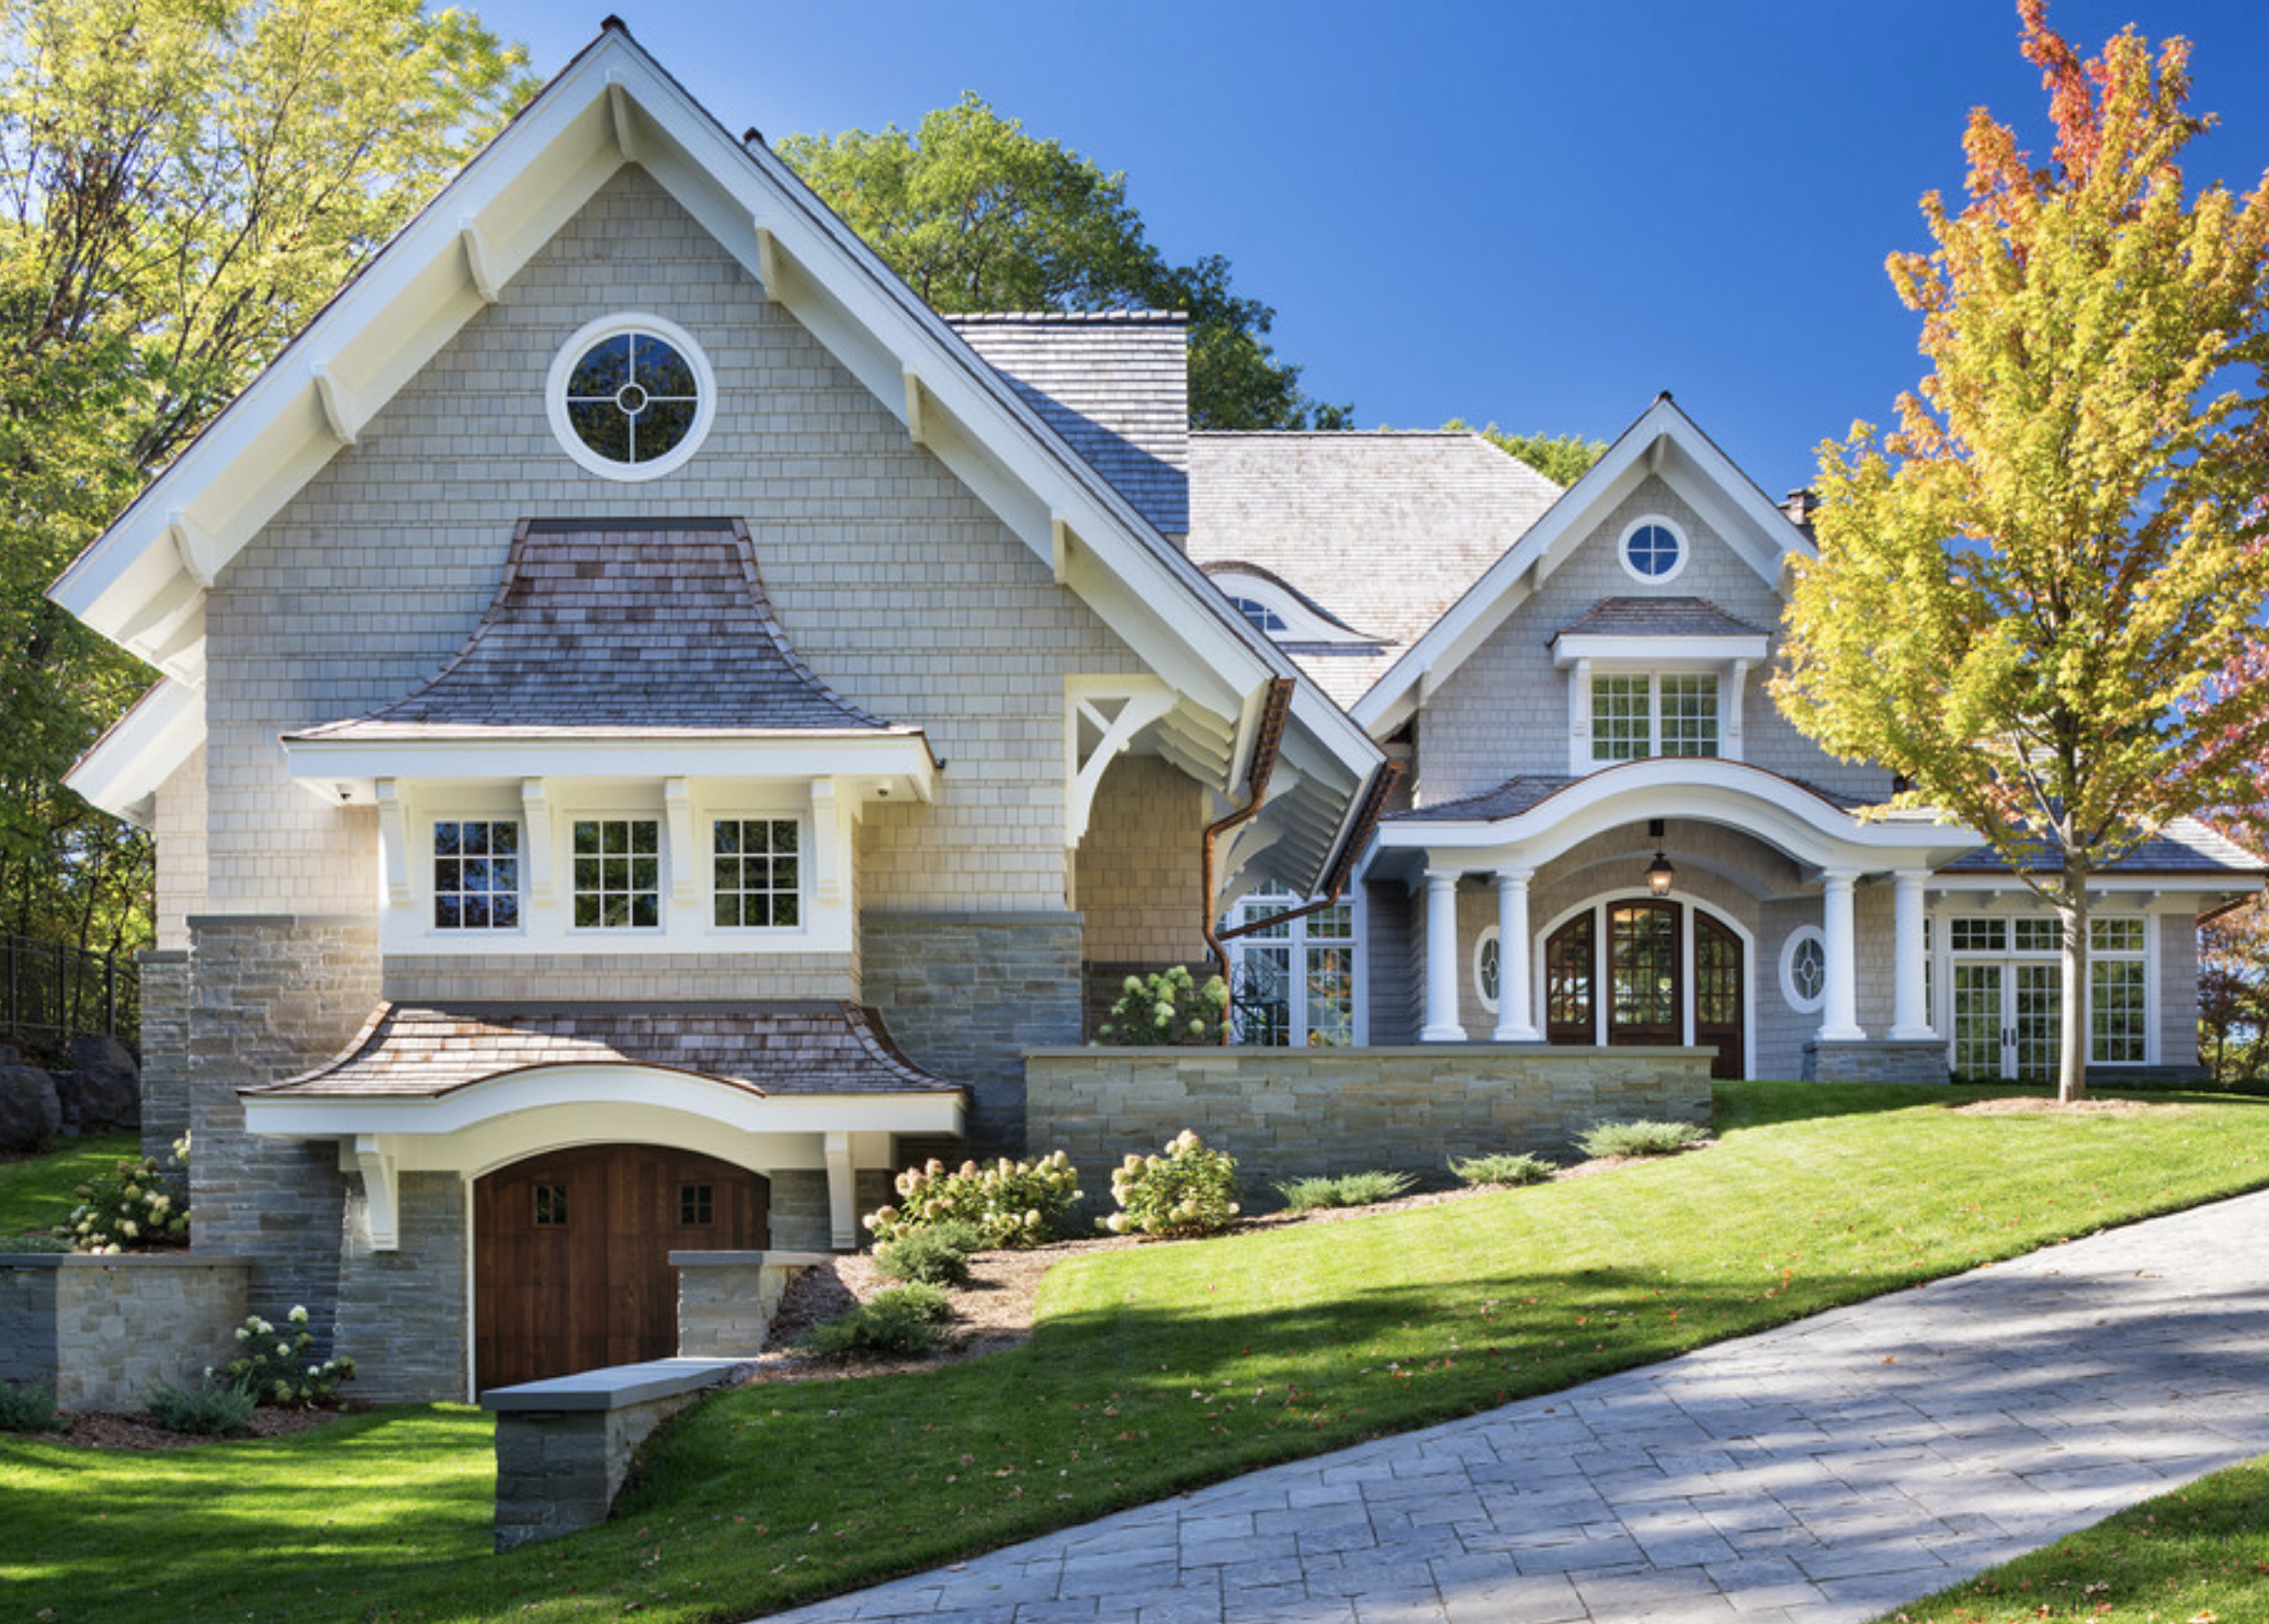 siding brick roofing home exterior